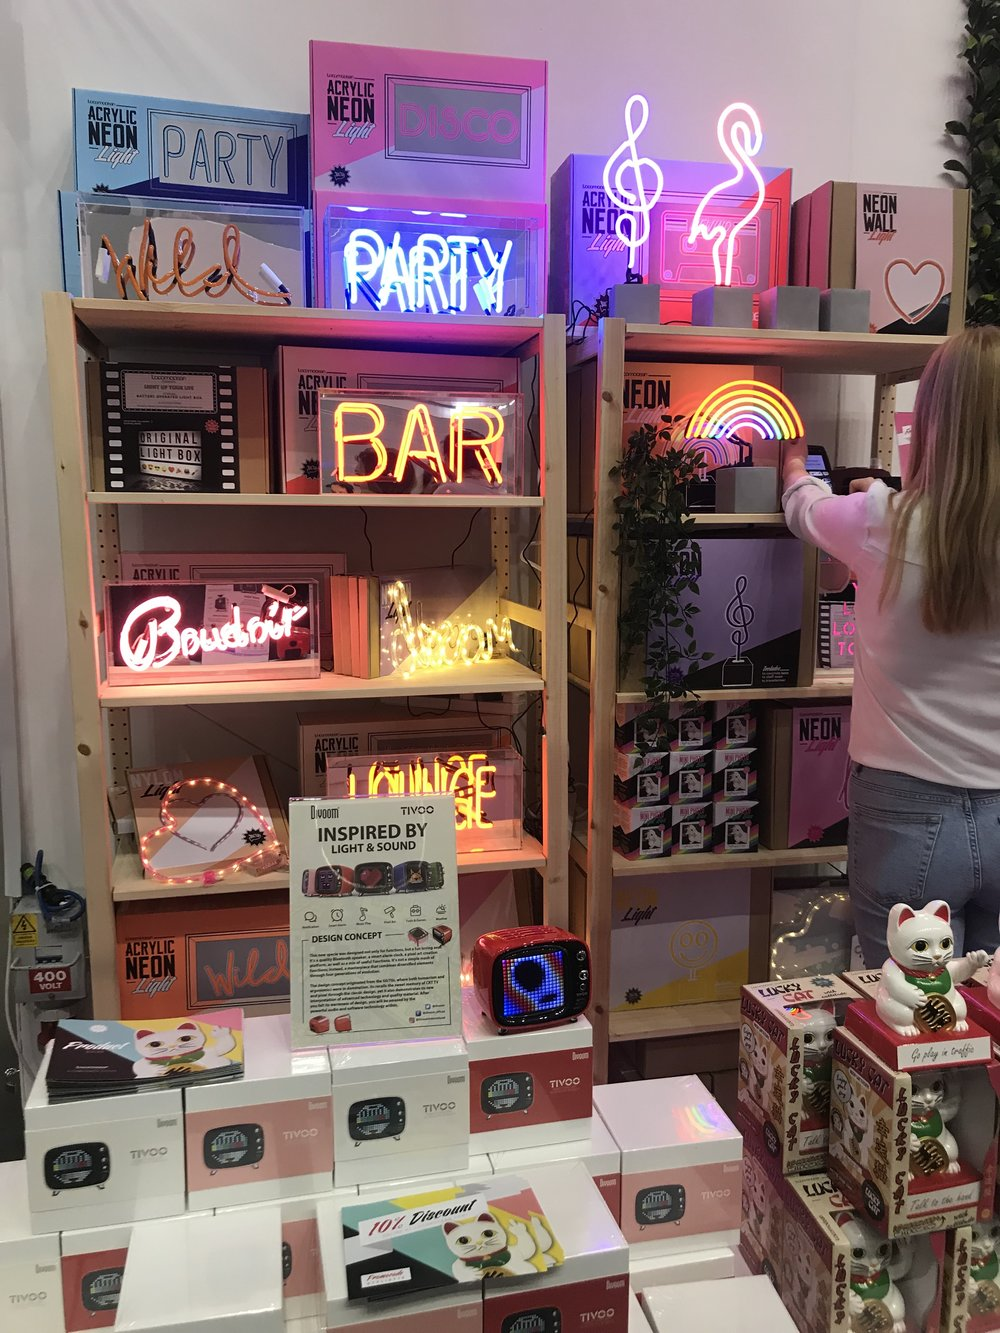 I was so excited to visit Locomocean!  who make amazing neon lights and other creative lifestyle products!